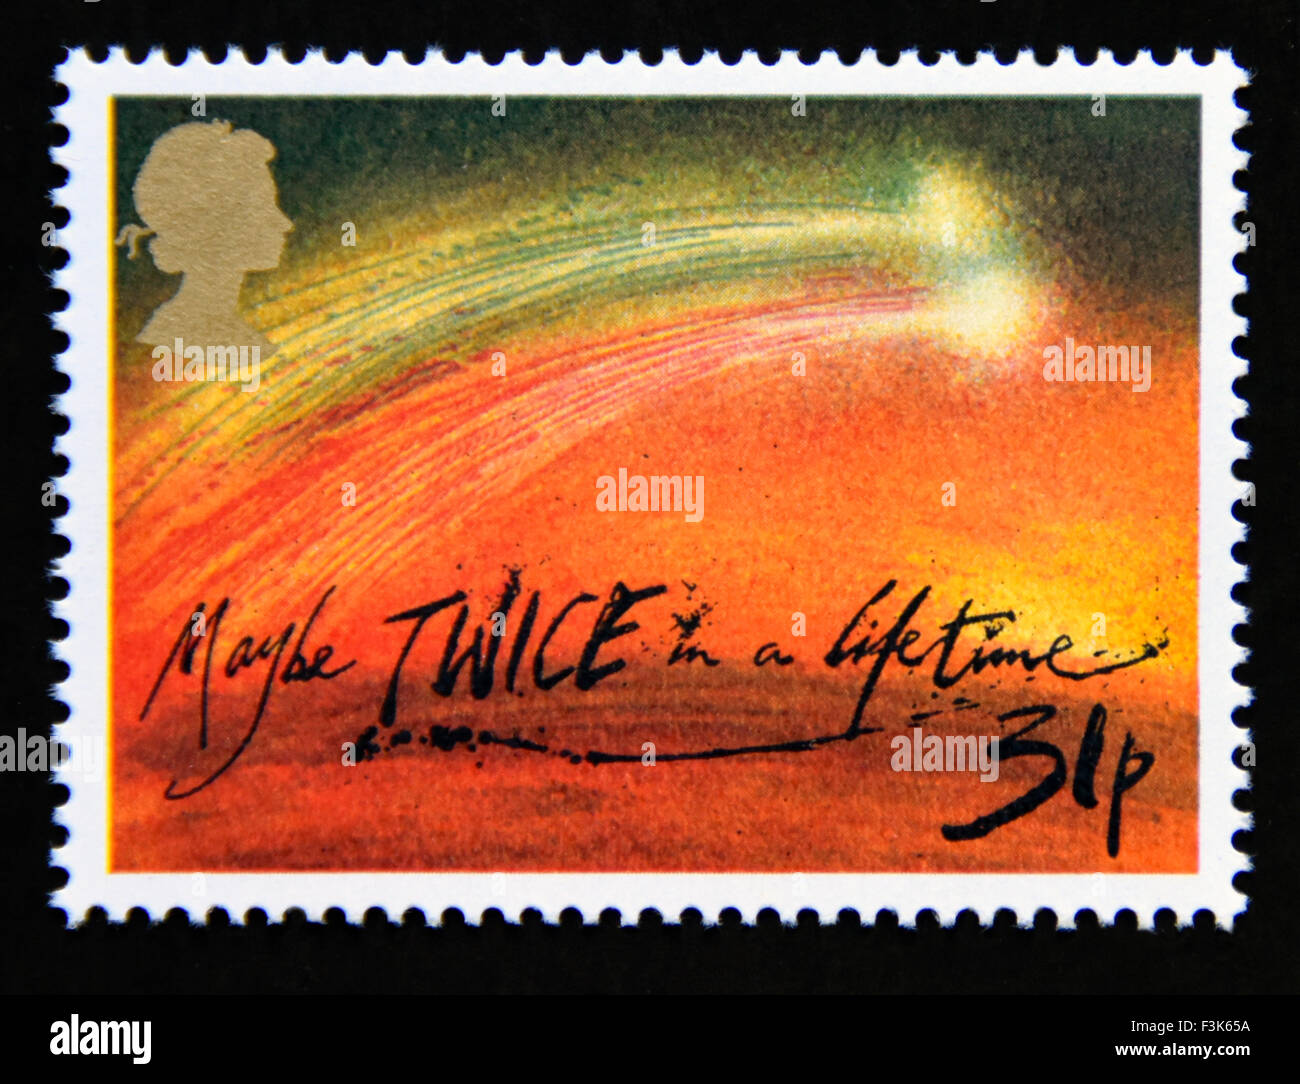 Postage stamp. Great Britain. Queen Elizabeth II. 1986. Appearance of Halley's Comet.'Maybe TWICE in a lifetime'. - Stock Image